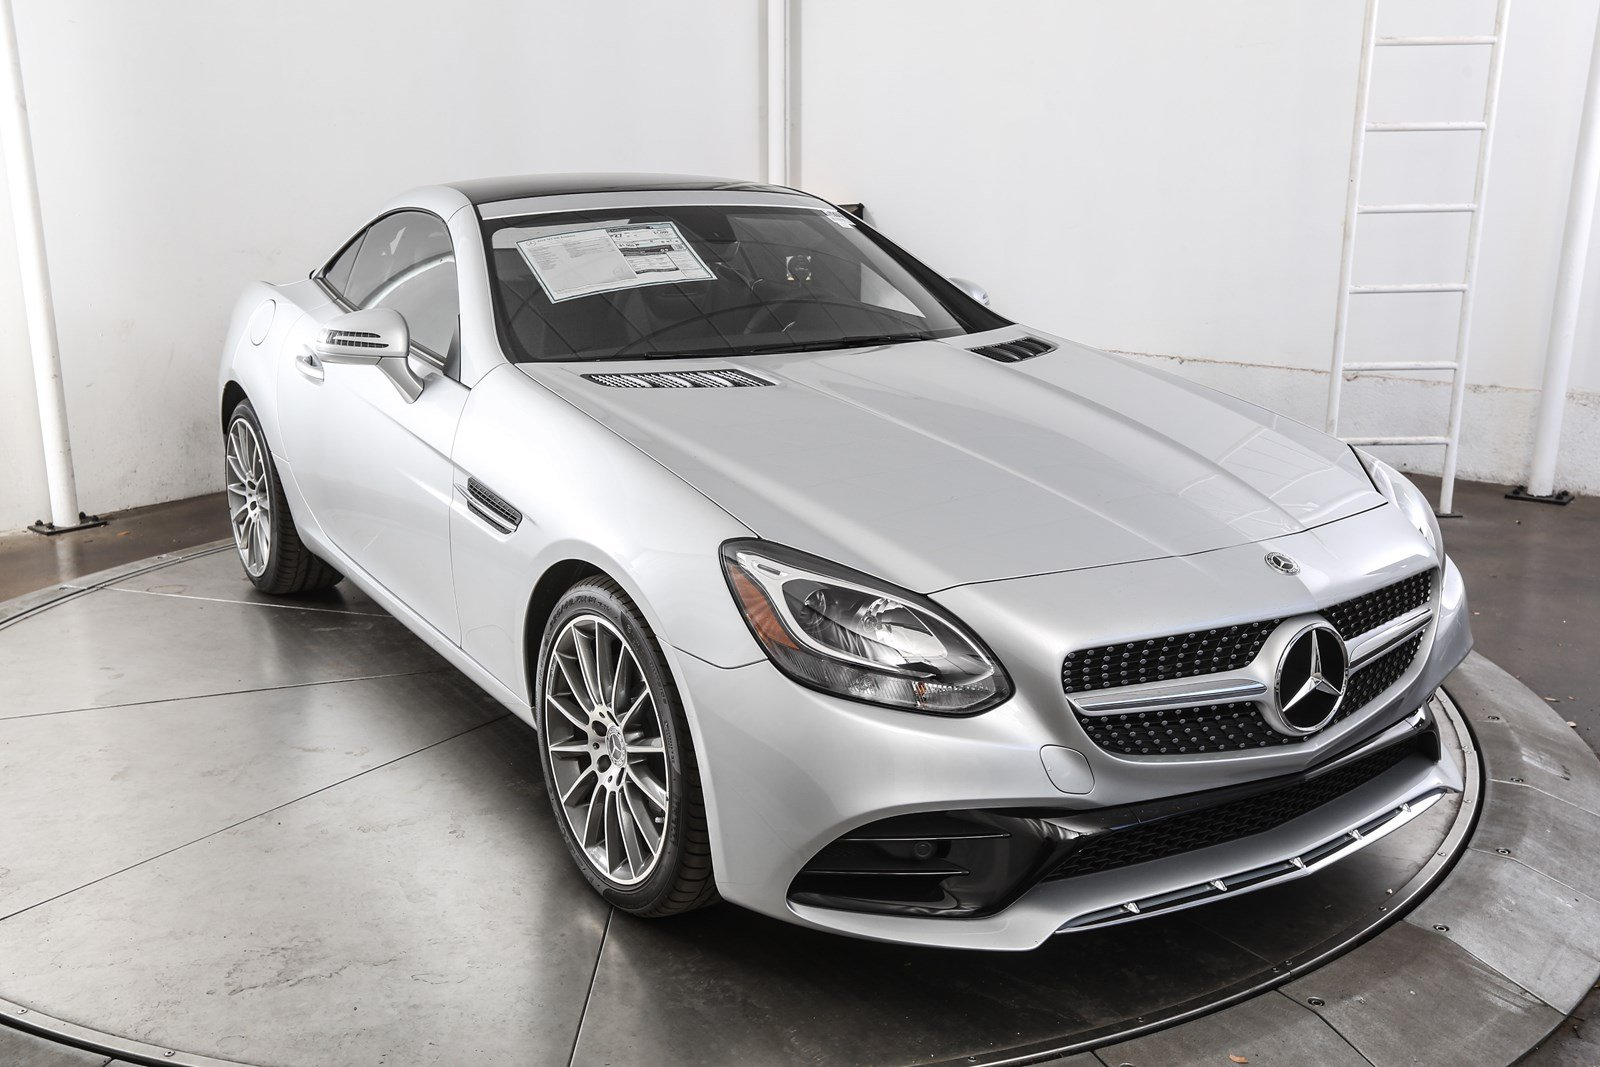 New 2018 mercedes benz slc slc 300 2d convertible in for New mercedes benz convertible